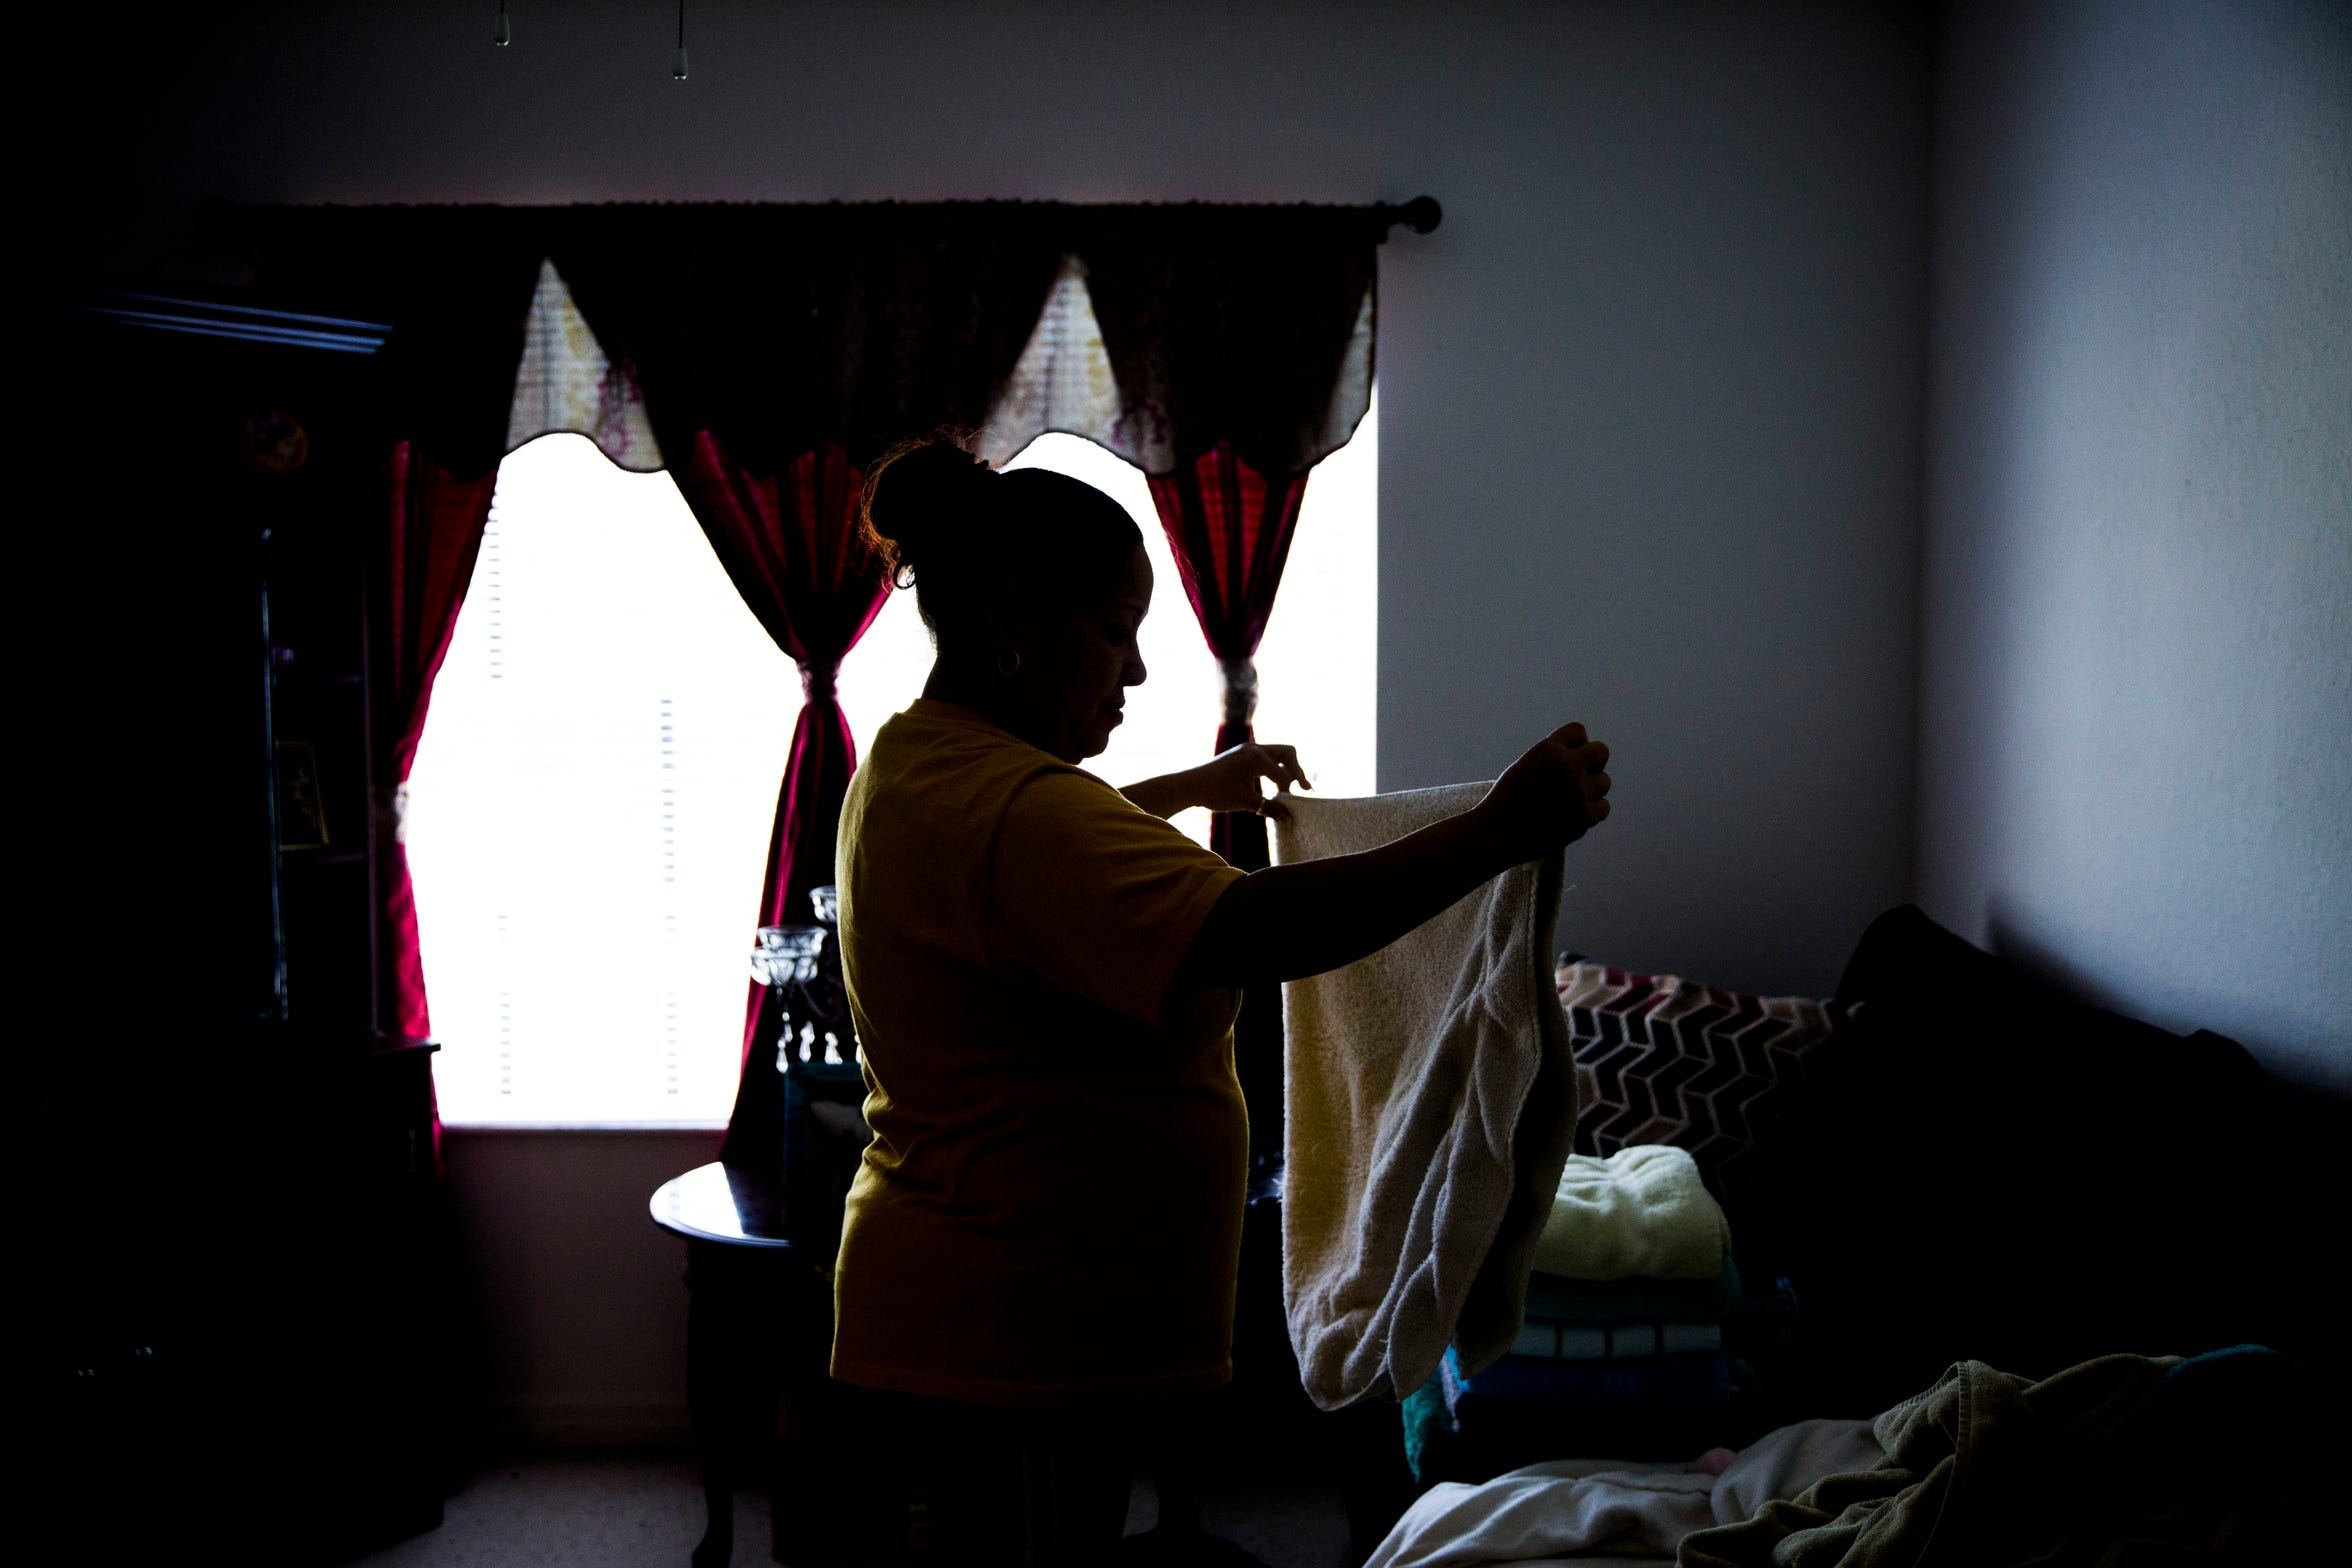 Ludi Rivera folds laundry in her Immokalee apartment on Sunday, Sept. 2, 2018. The family's home was destroyed during Hurricane Irma last year and they are staying in an apartment until their home is rebuilt by several charities, including the Guadalupe Center, where Rivera works.